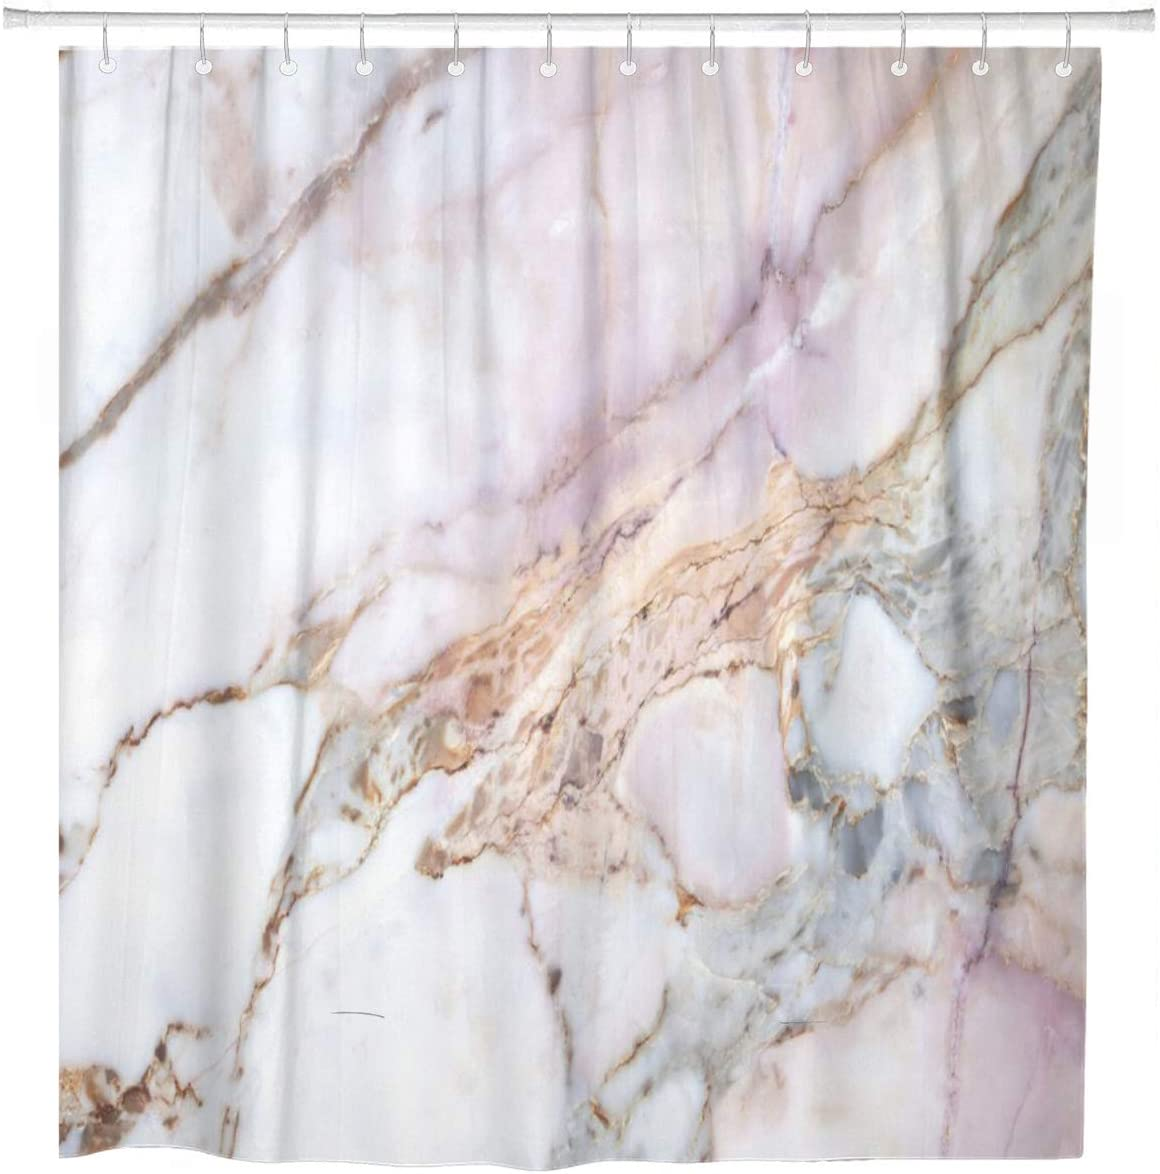 ArtSocket Shower Curtain Pink White Marble Pattern Gray Black Stone Light Granite Home Bathroom Decor Polyester Fabric Waterproof 72 x 72 Inches Set with Hooks